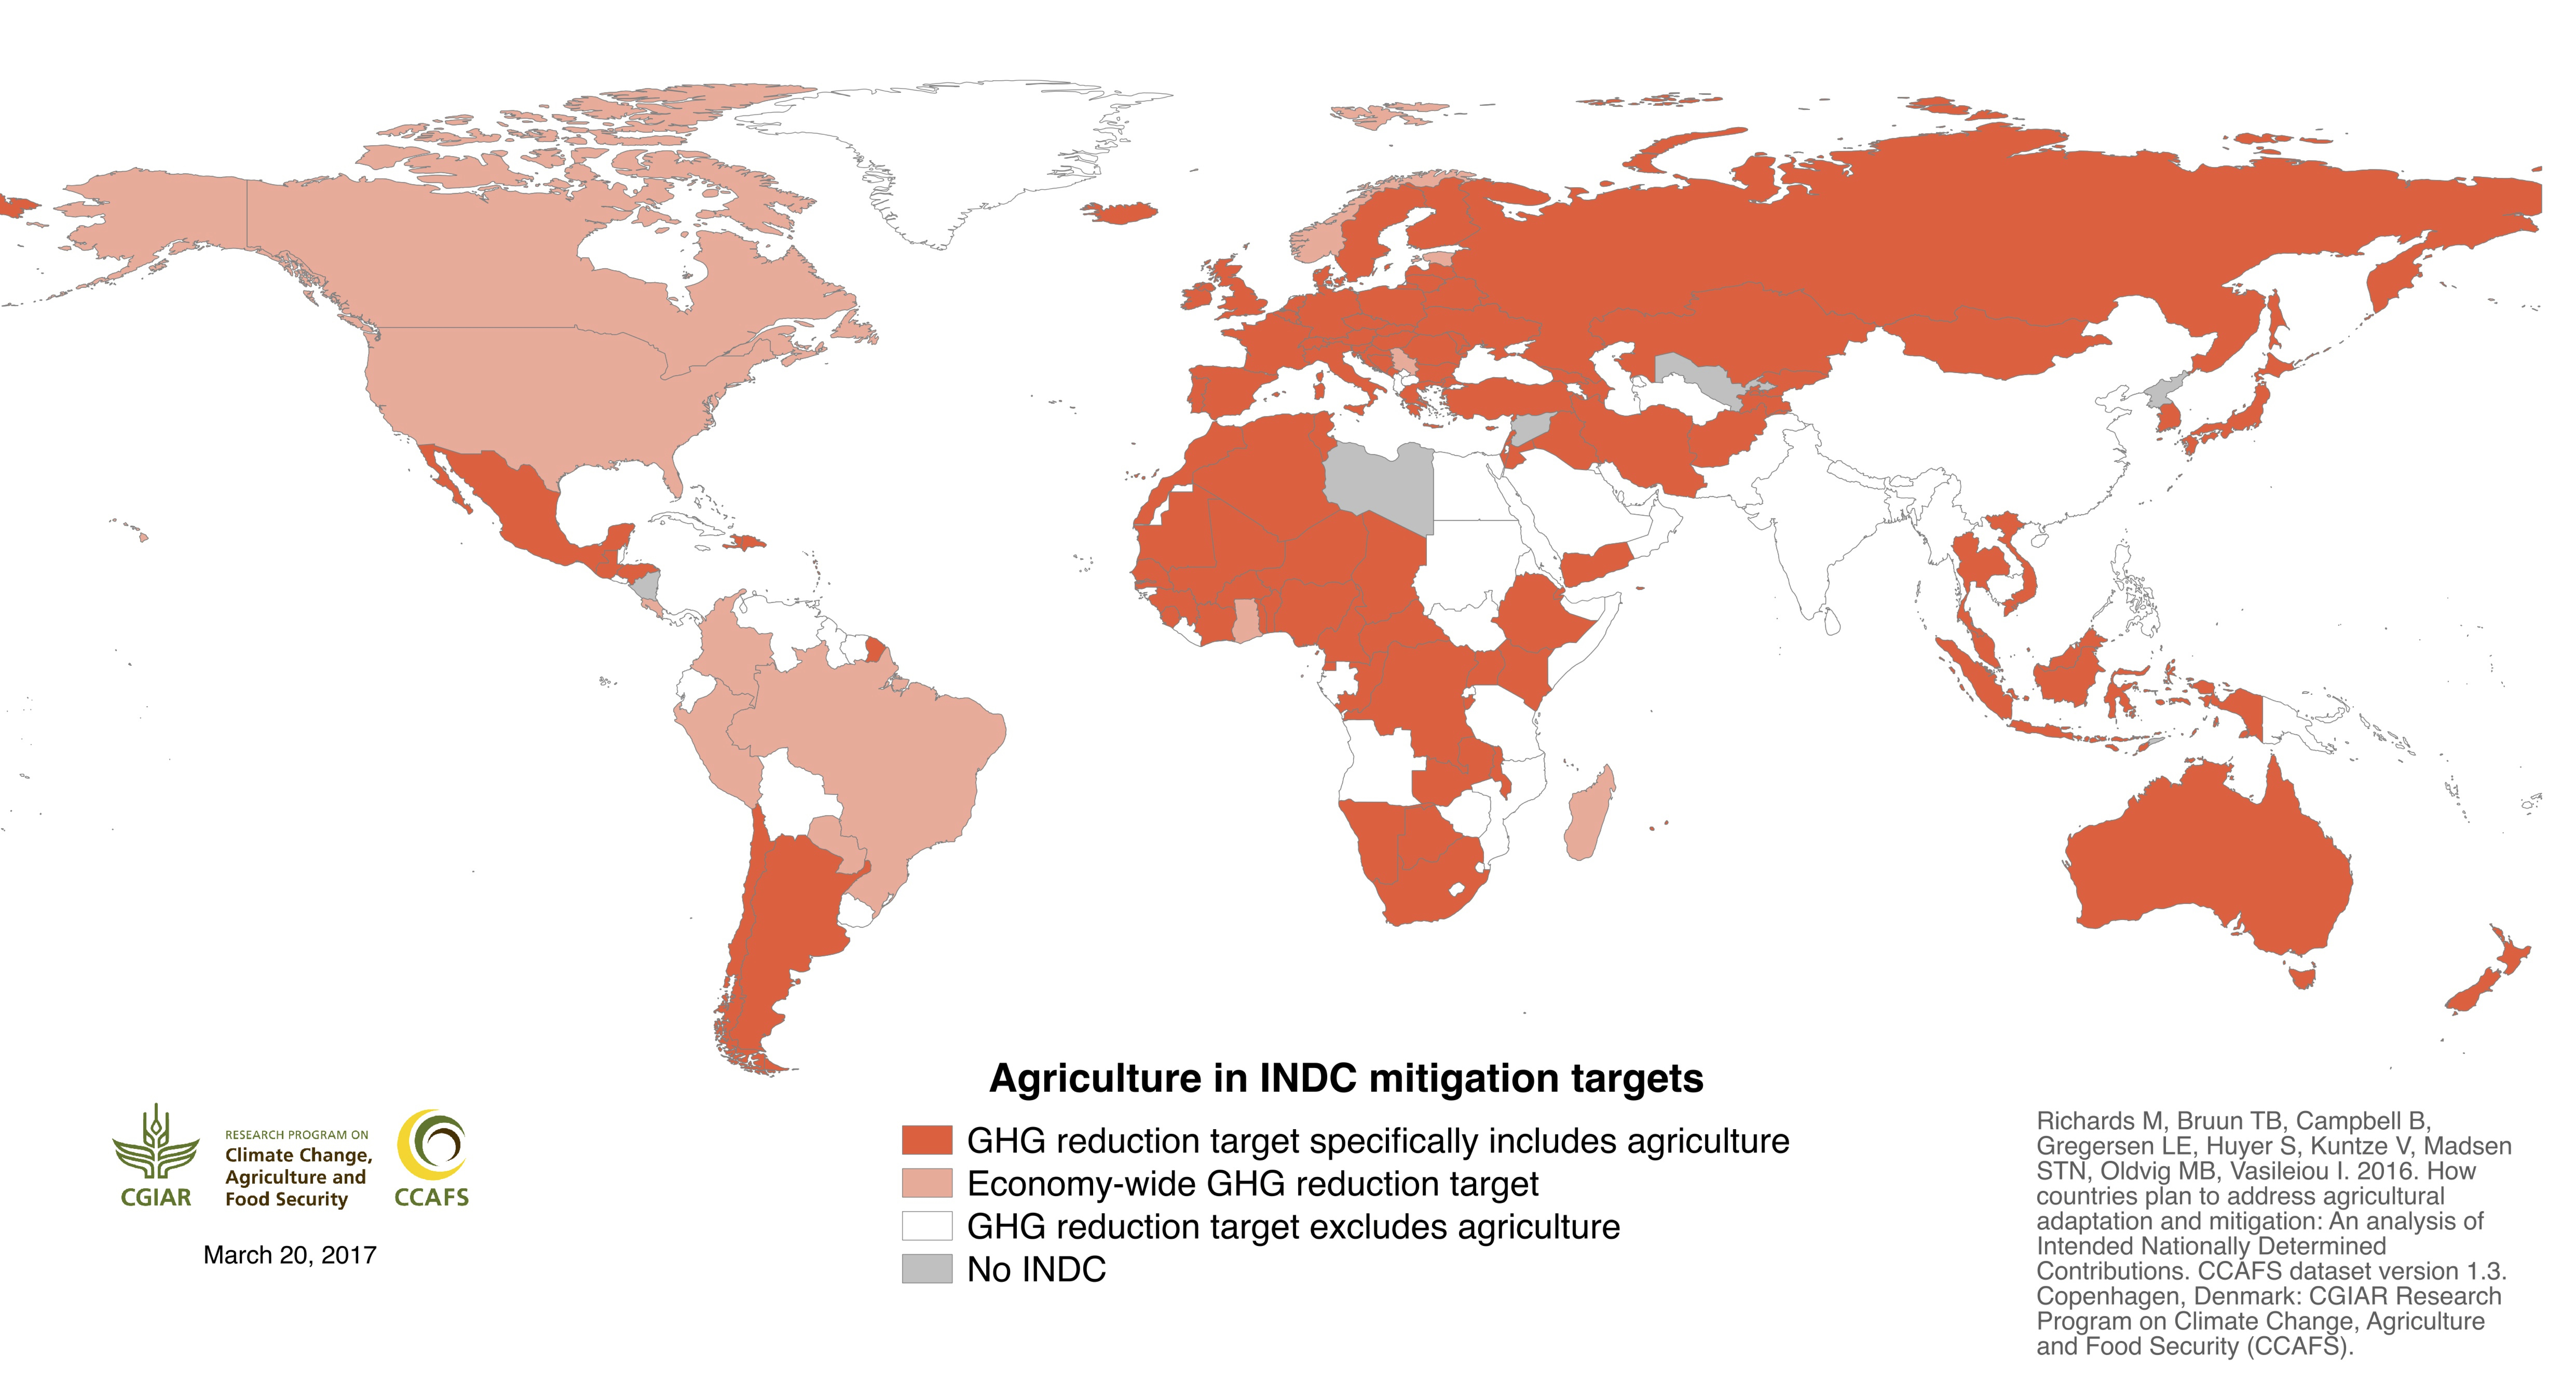 Agriculture World Map.Agriculture S Prominence In The Indcs Data And Maps Ccafs Cgiar